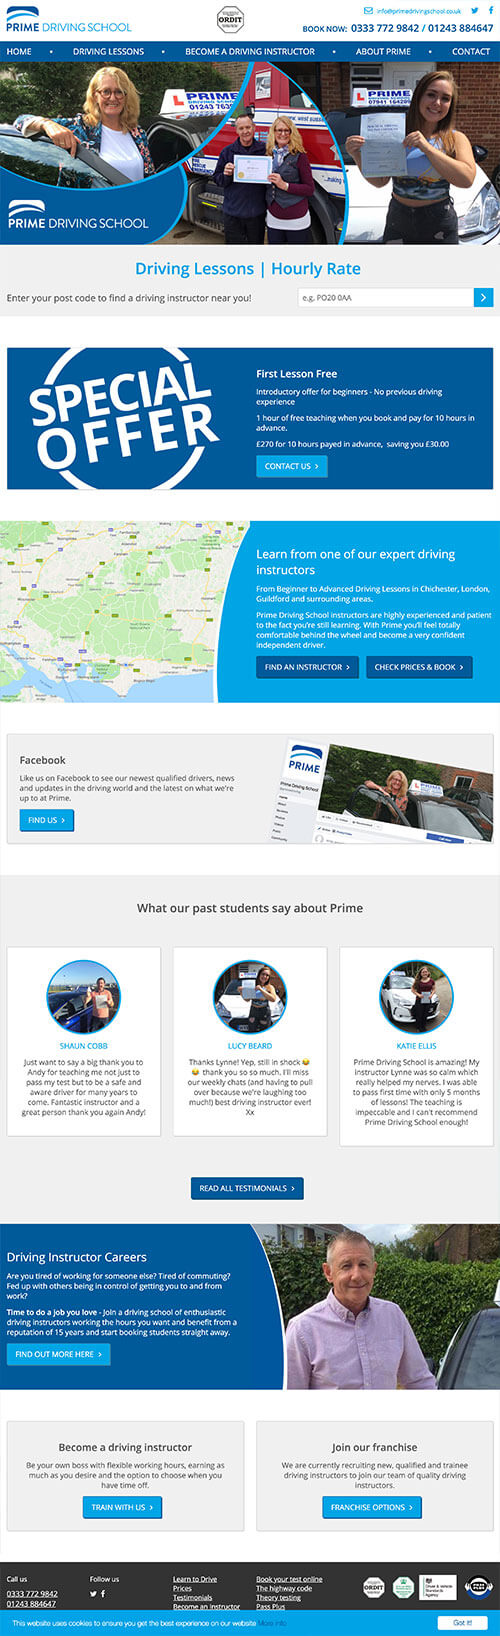 Prime Driving School Full Website Design & Build